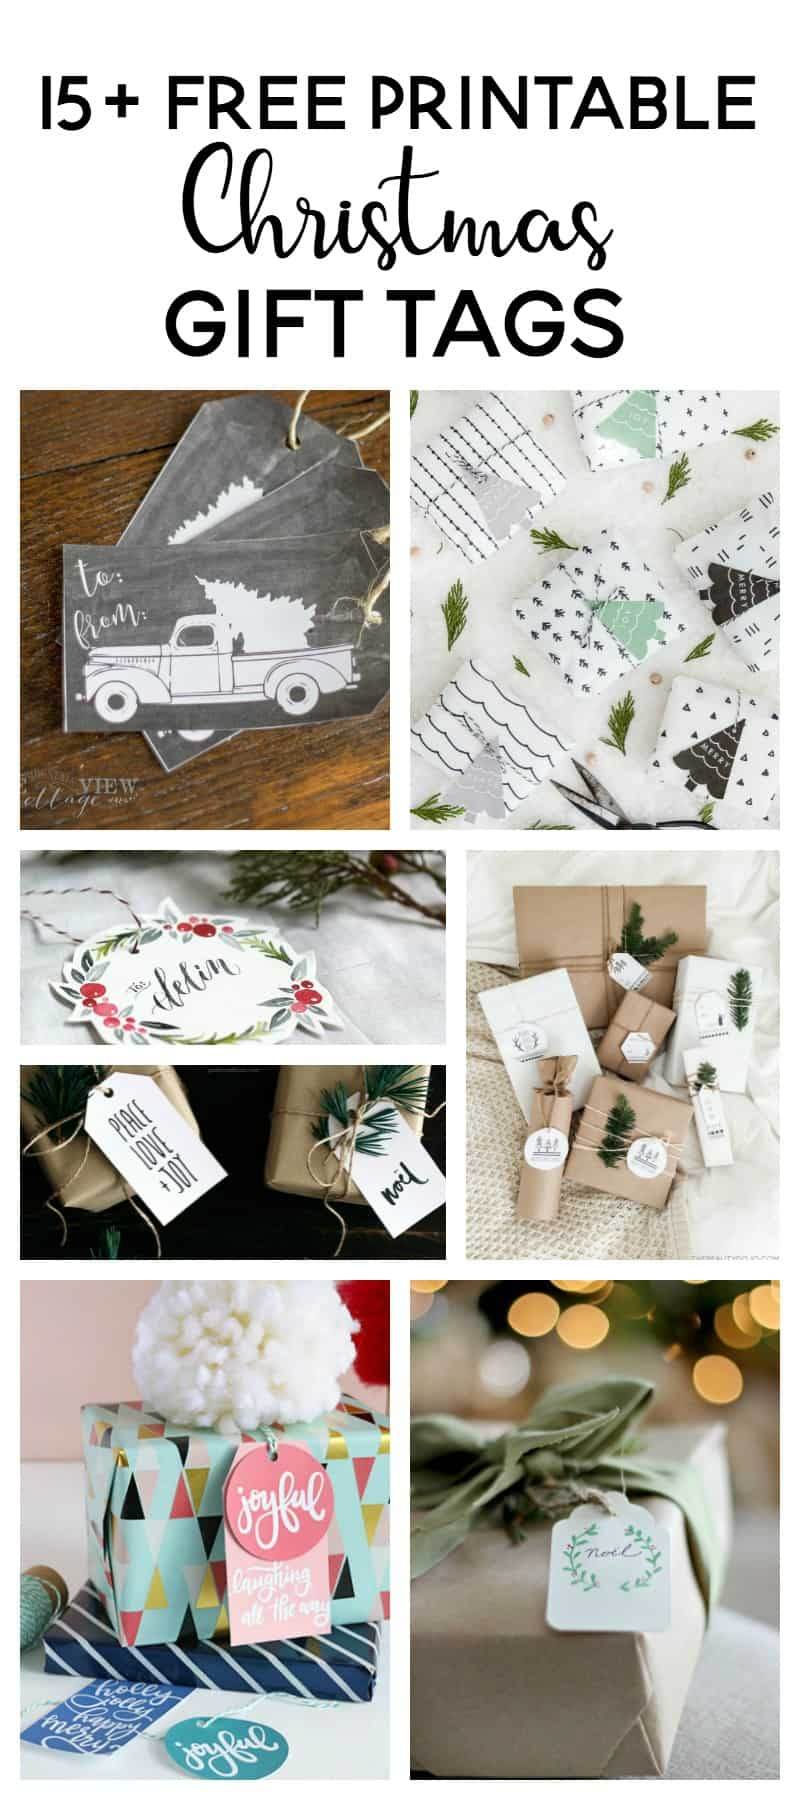 15+ Free Printable Christmas Gift Tags -